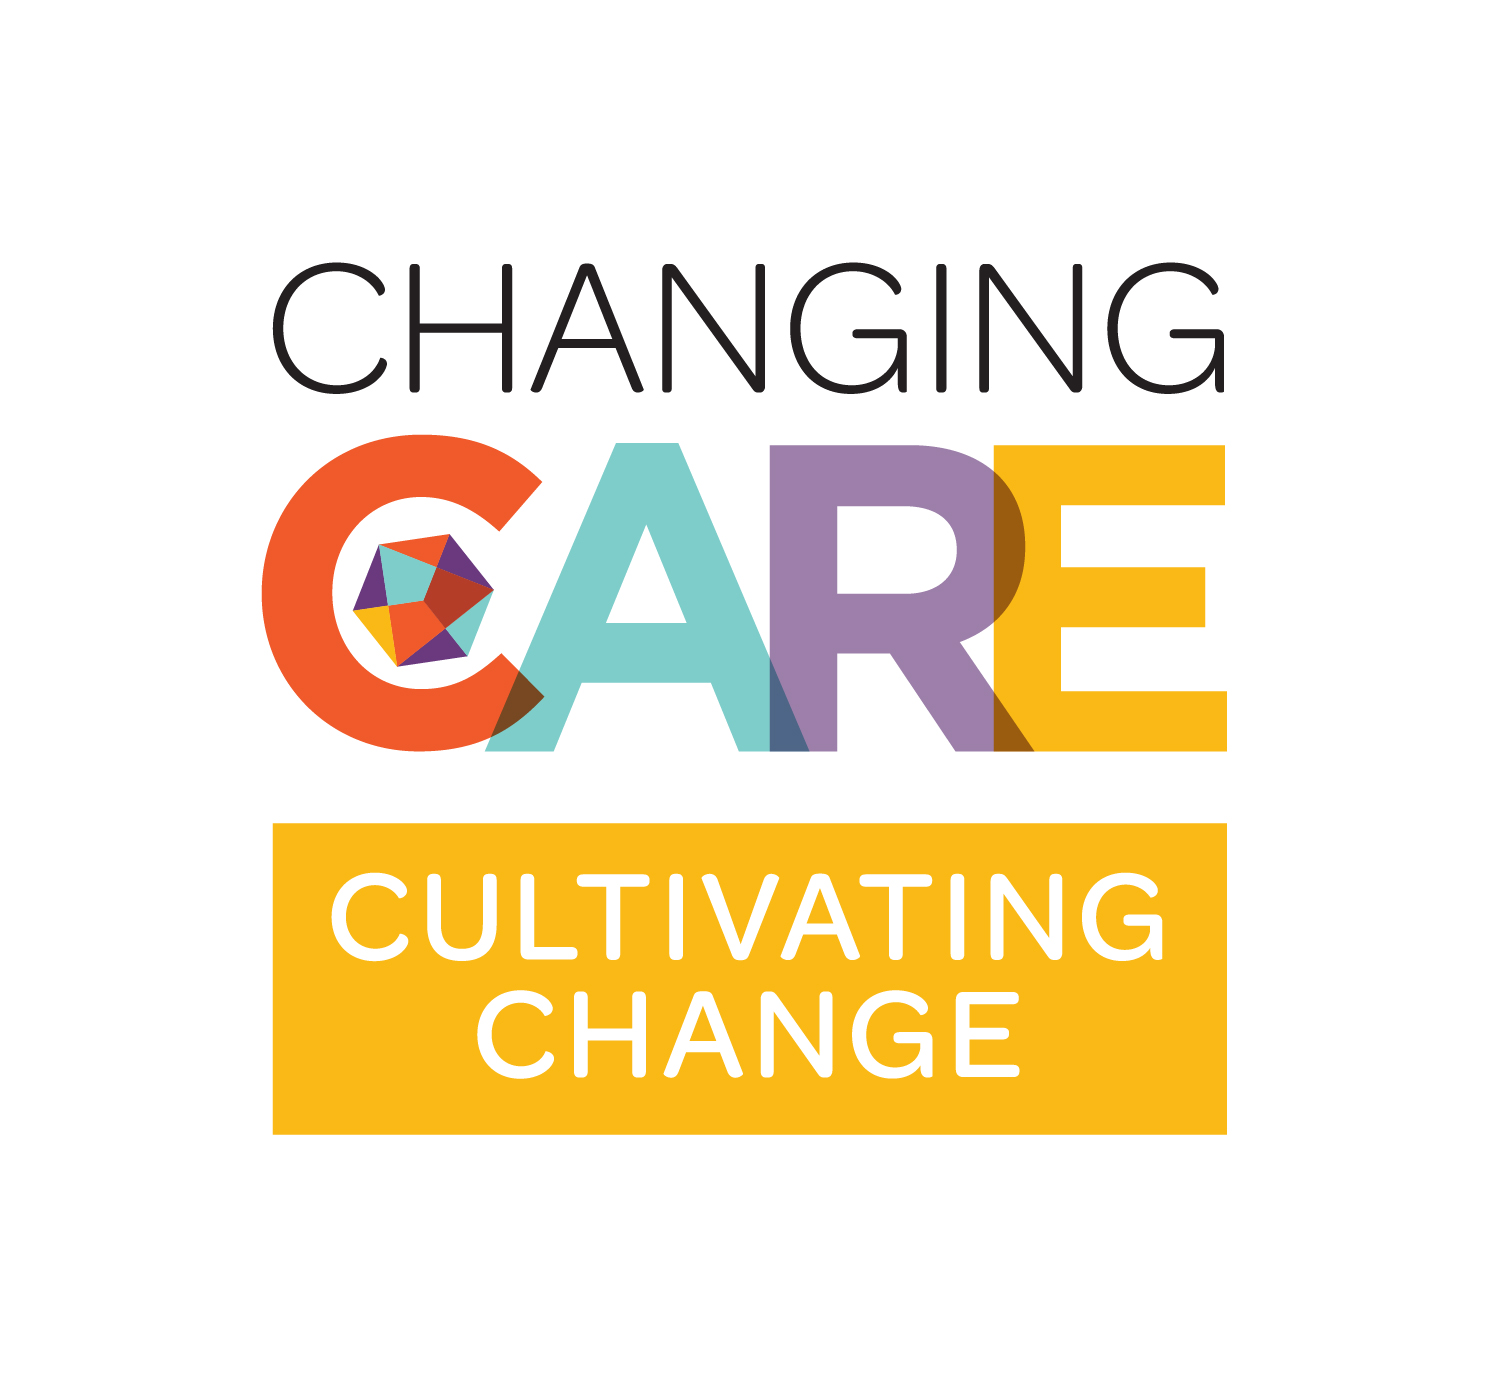 cultivating-change-changing-care-logo